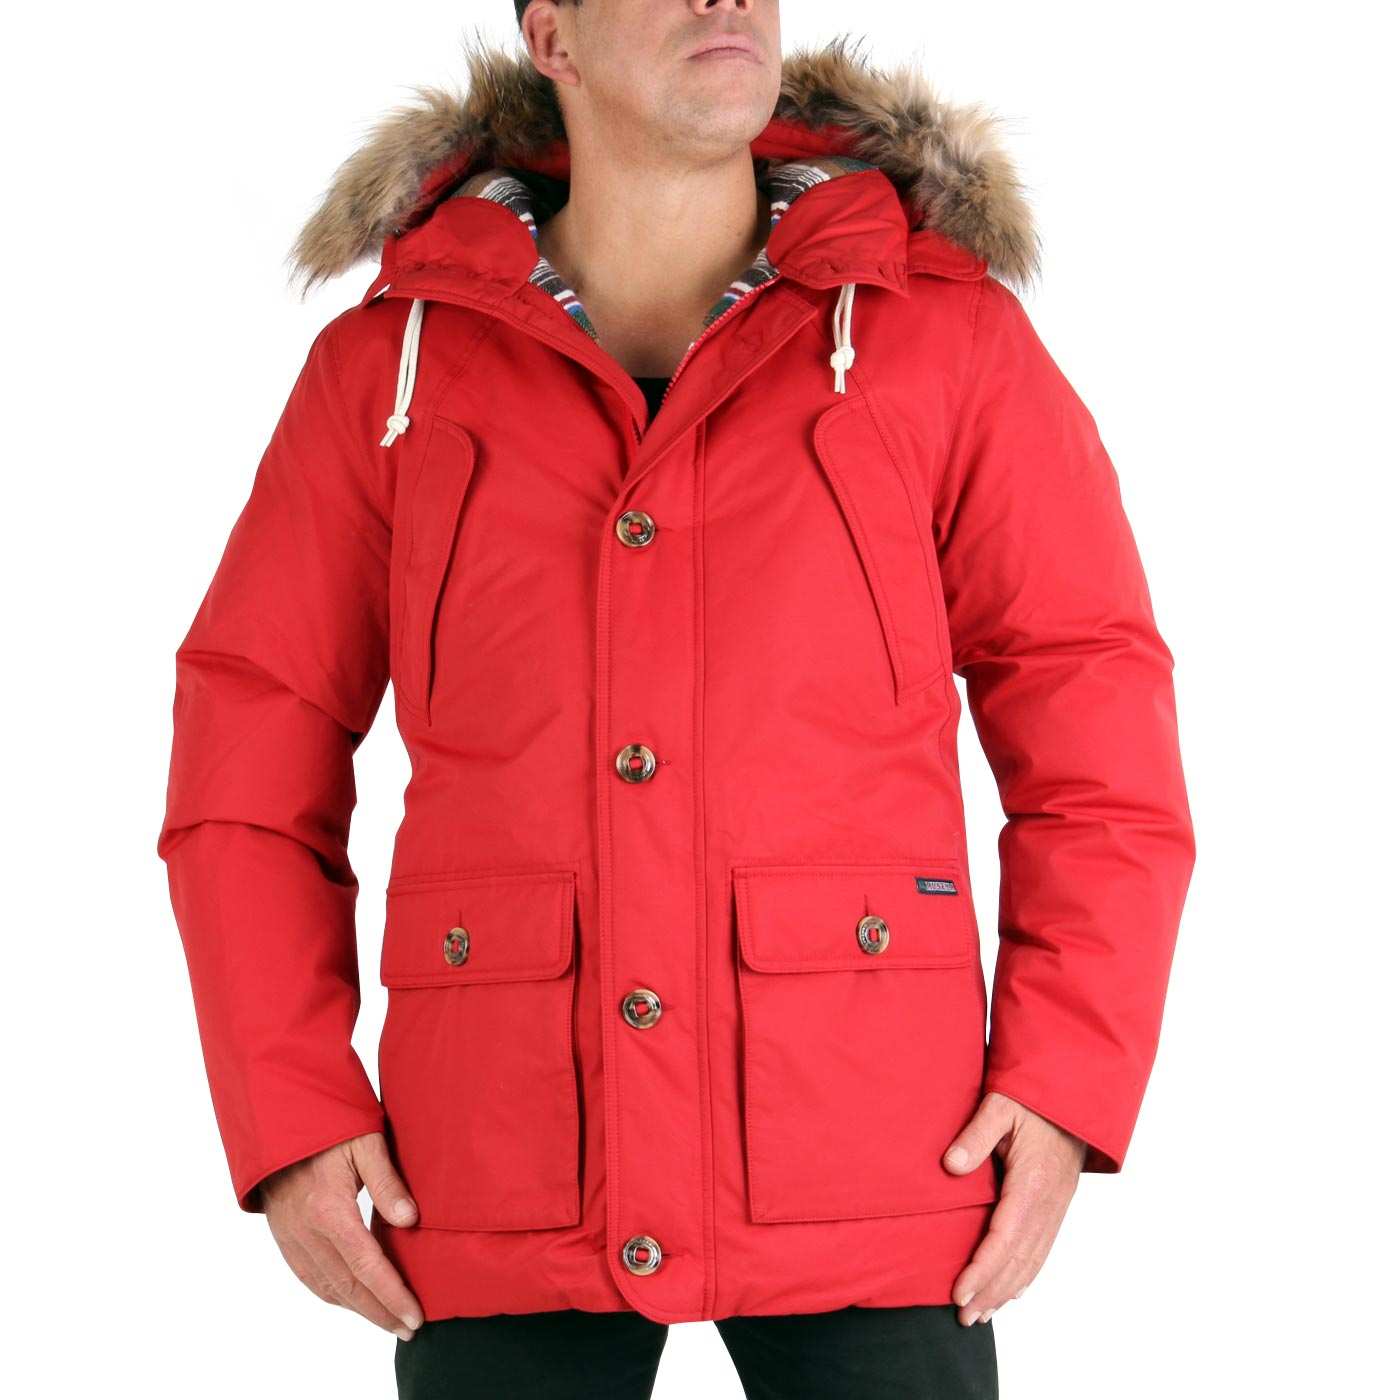 museum herren winter daunen parka mantel jacke new seattle navajo red 19438 ebay. Black Bedroom Furniture Sets. Home Design Ideas